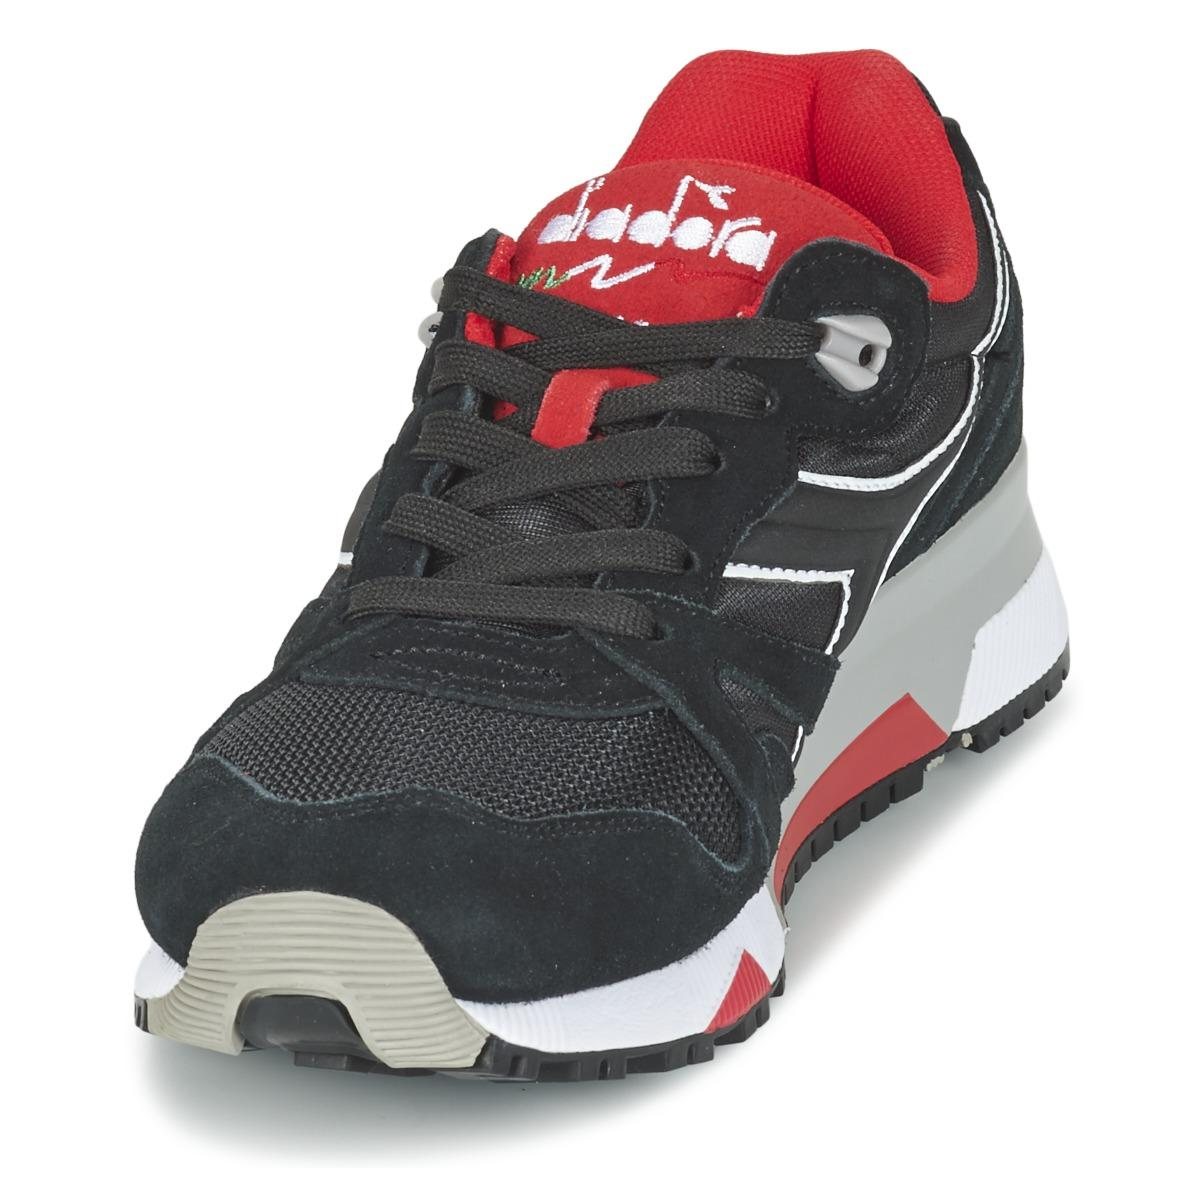 Diadora Synthetic N9000 Nylon Ii Shoes (trainers) in Black